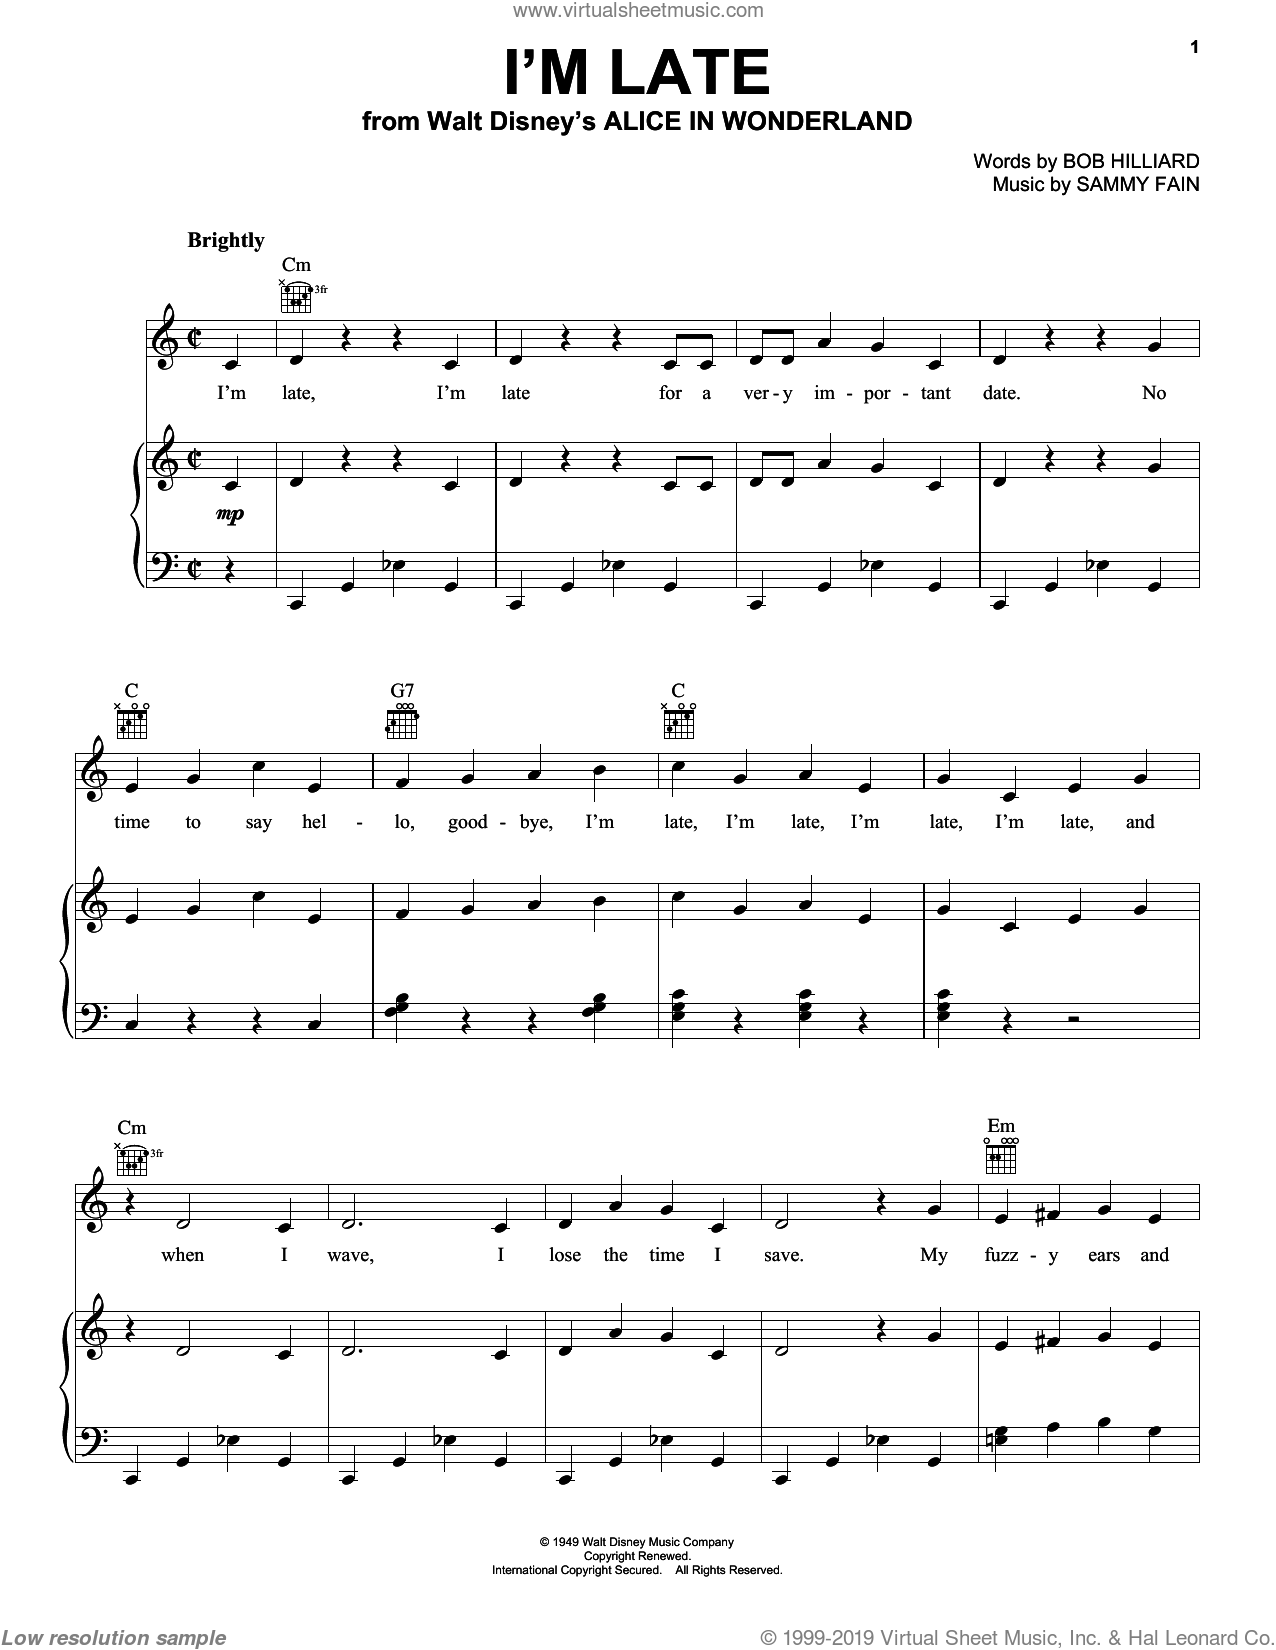 I'm Late sheet music for voice, piano or guitar by Sammy Fain and Bob Hilliard, intermediate skill level